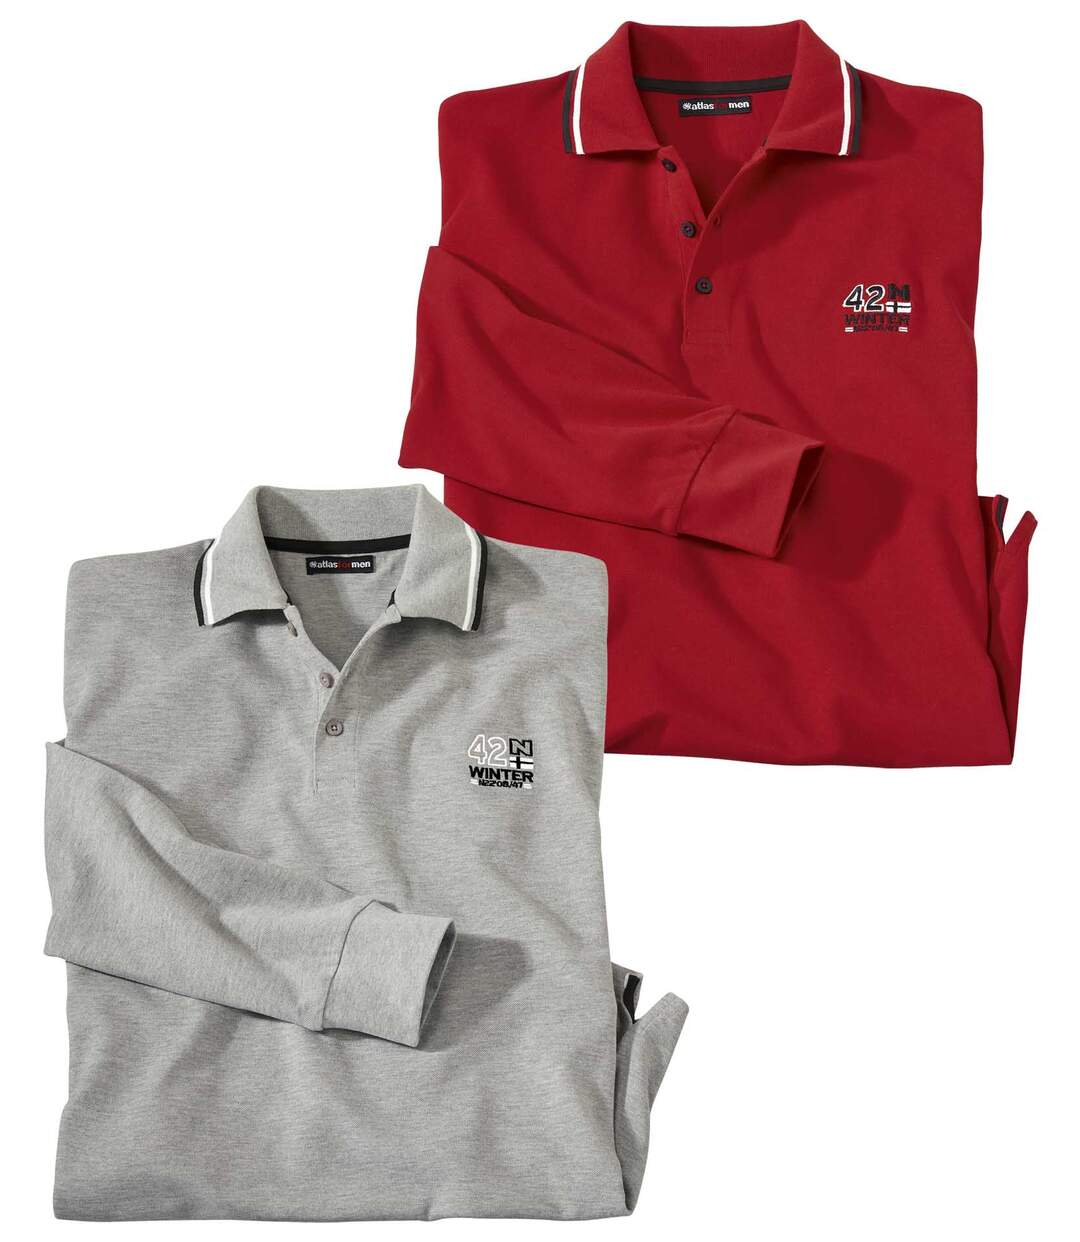 Pack of 2 Men's Grey & Red Polo Shirts - Long-Sleeved